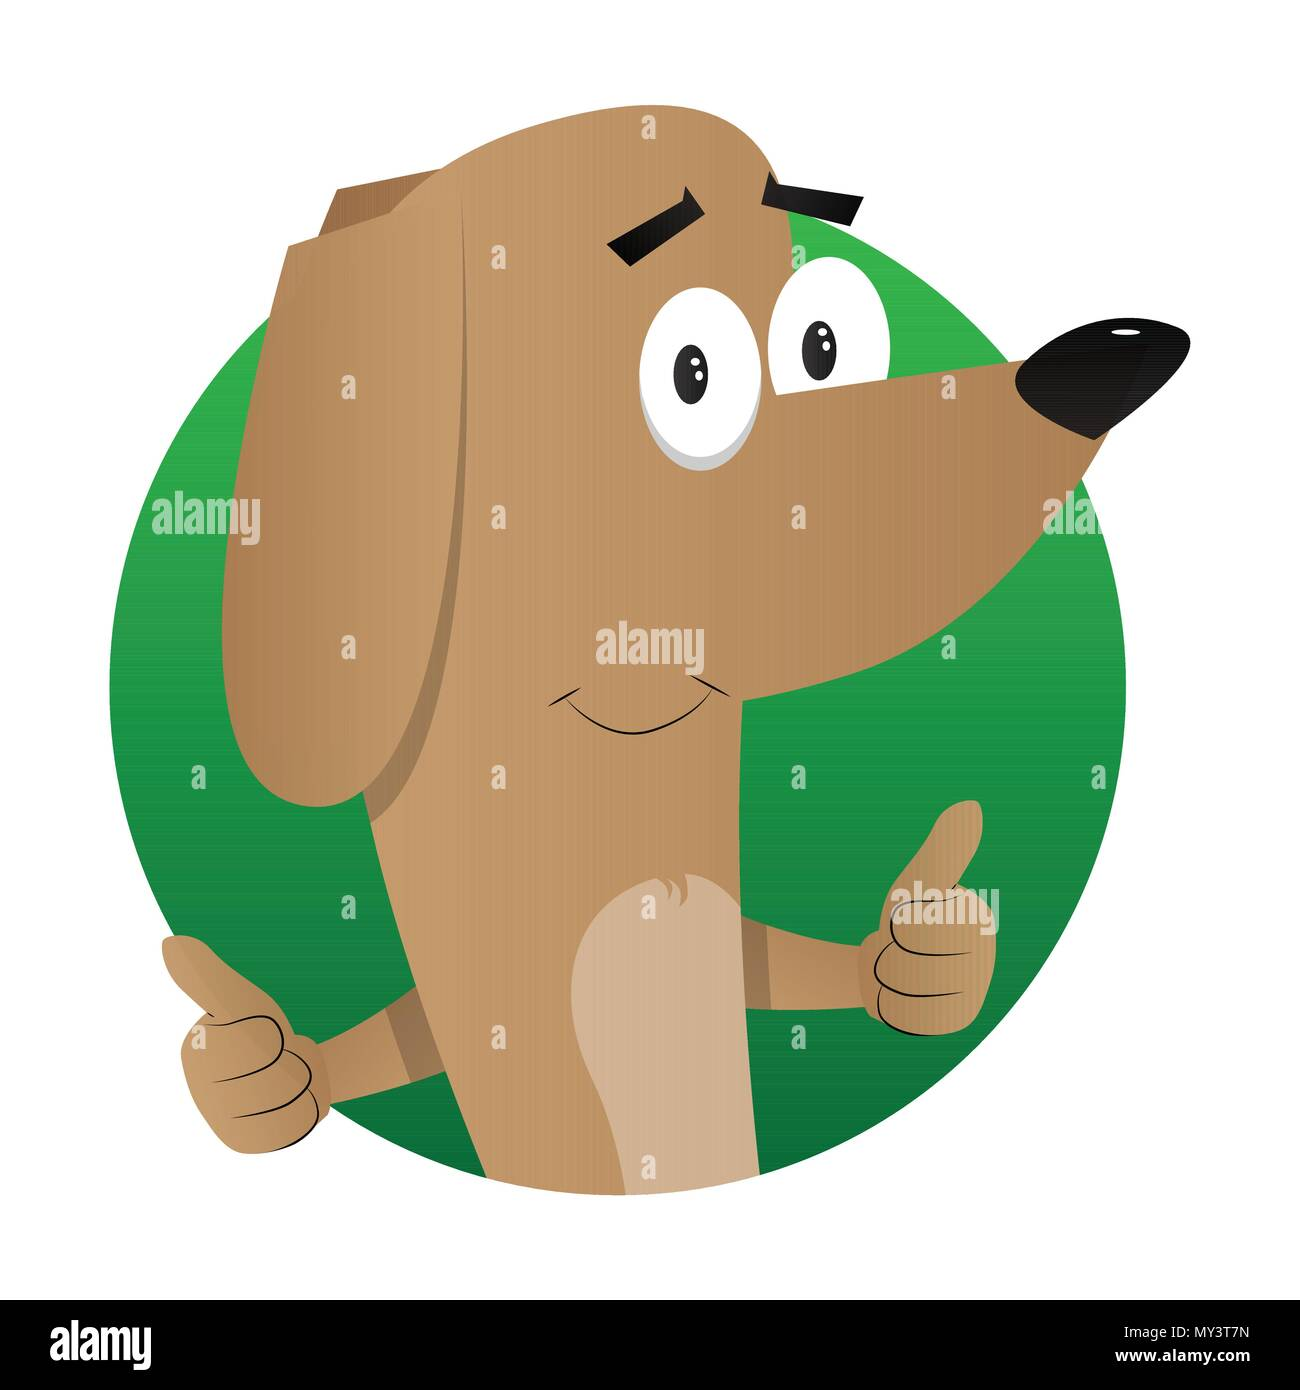 Cartoon illustrated dog making thumbs up sign with two hands. - Stock Image